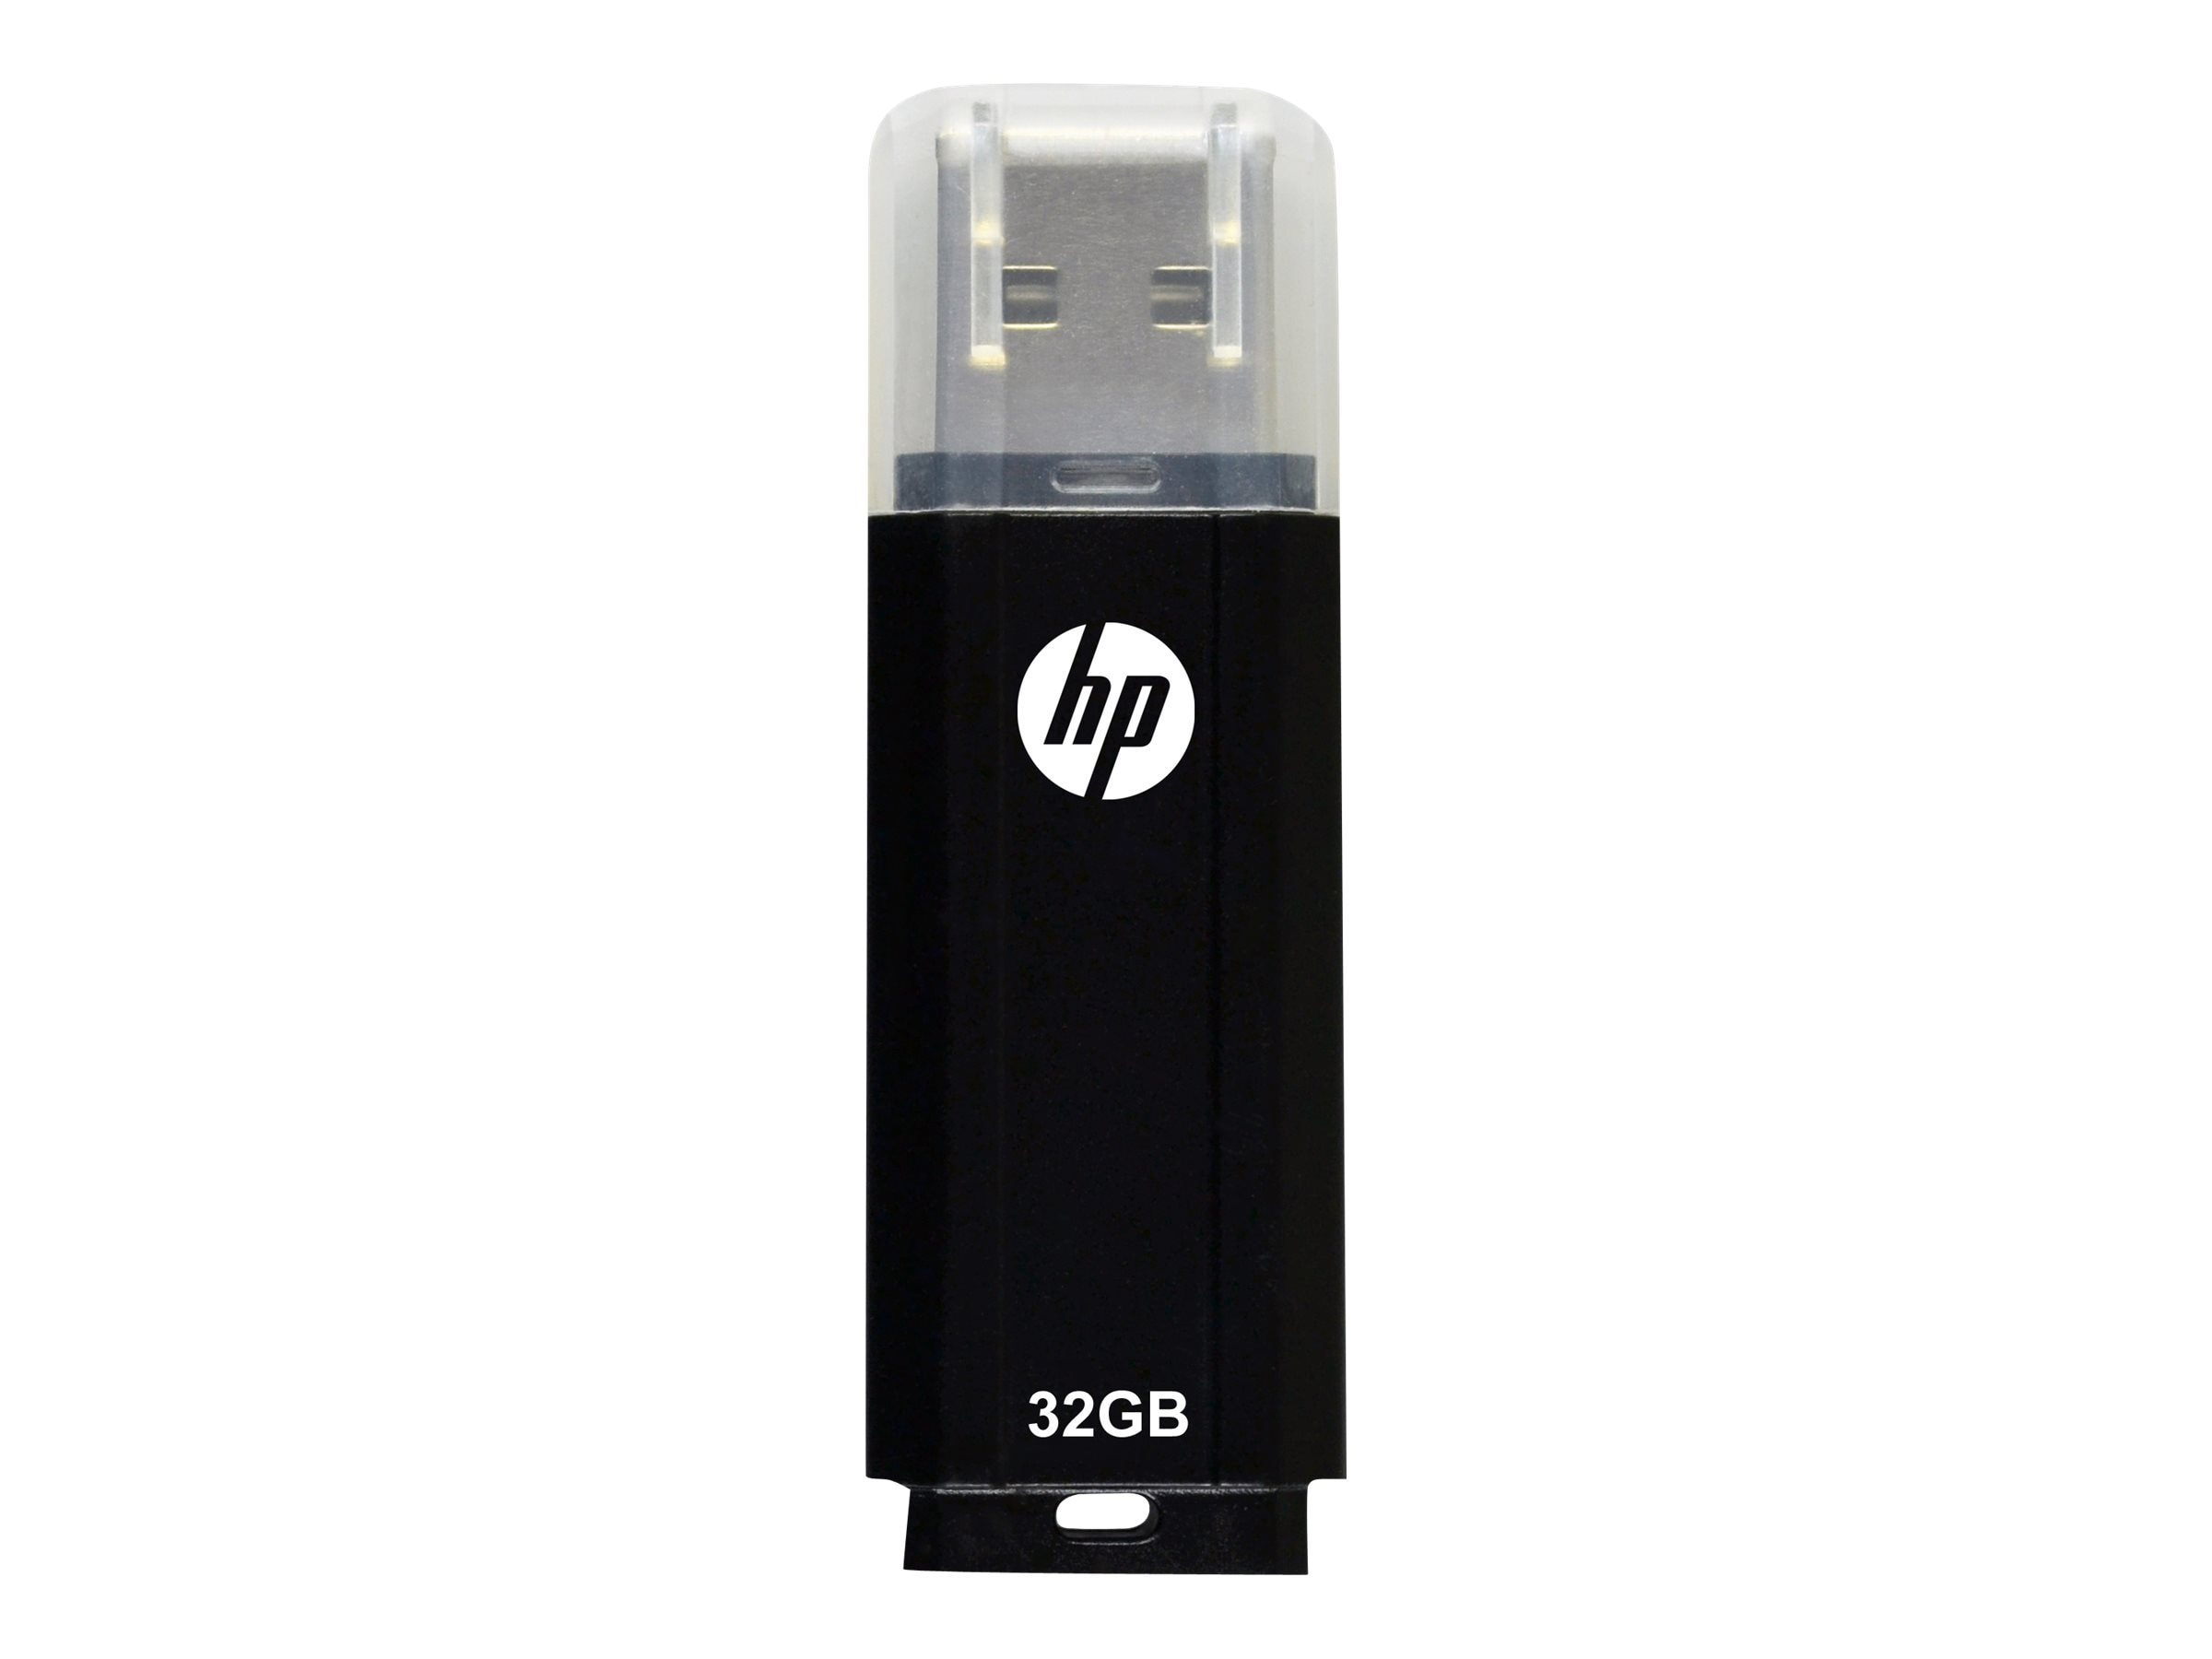 PNY 32GB HP V125W USB Flash Drive, P-FD32GHP125-GE, 14899109, Flash Drives